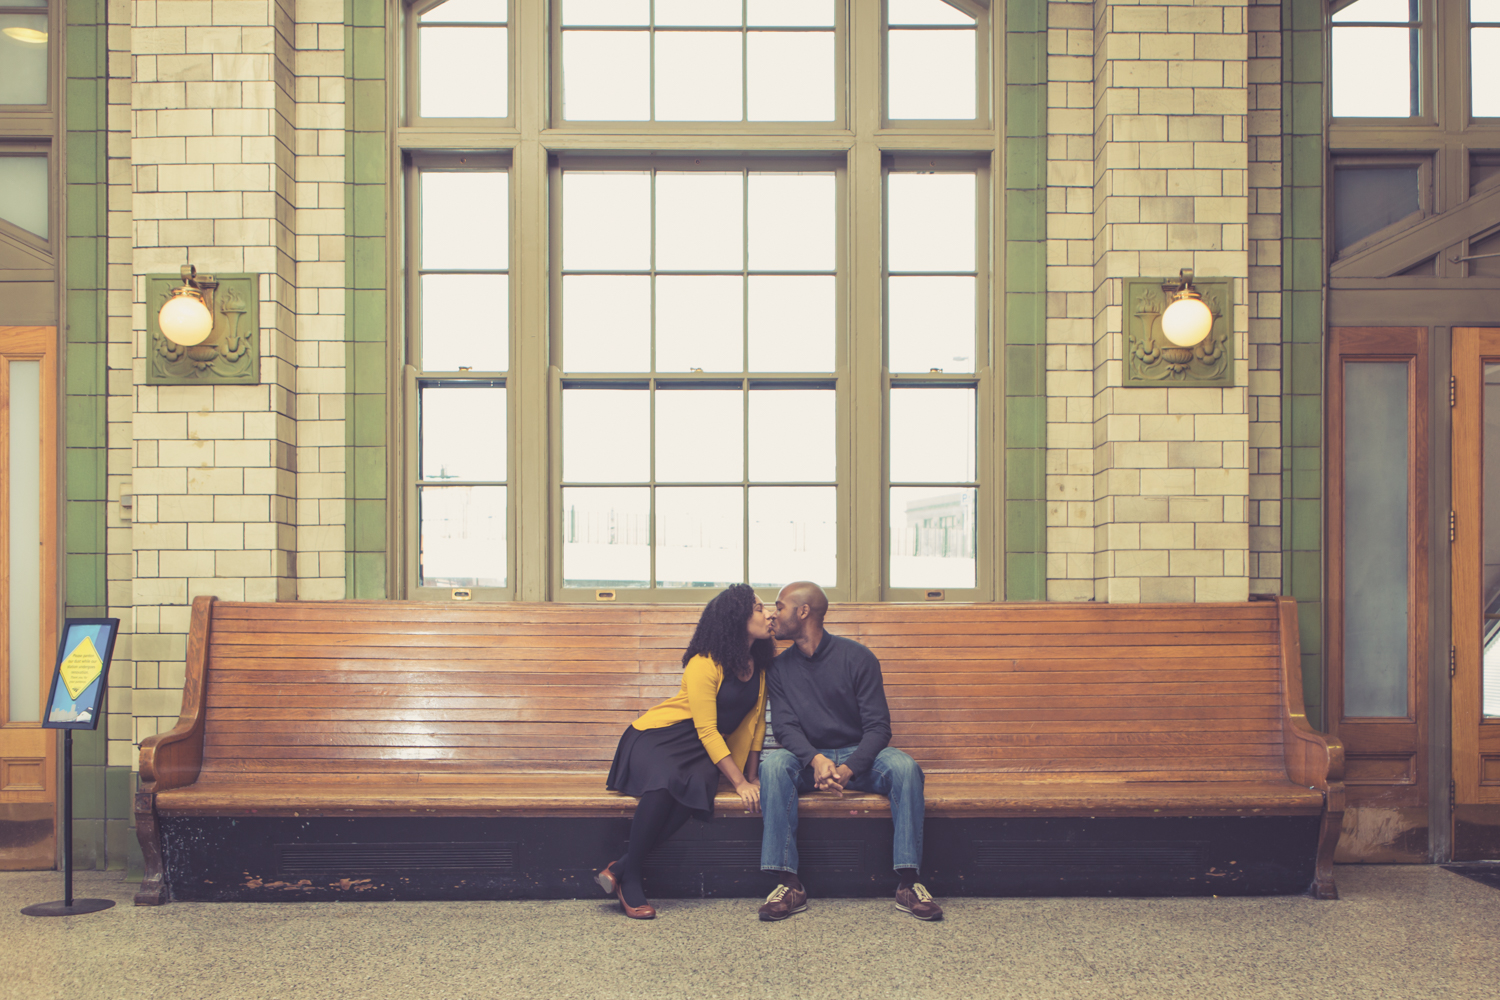 Engagement Portrait of Couple at Penn State Train Station in Baltimore by Lamonte G Photography